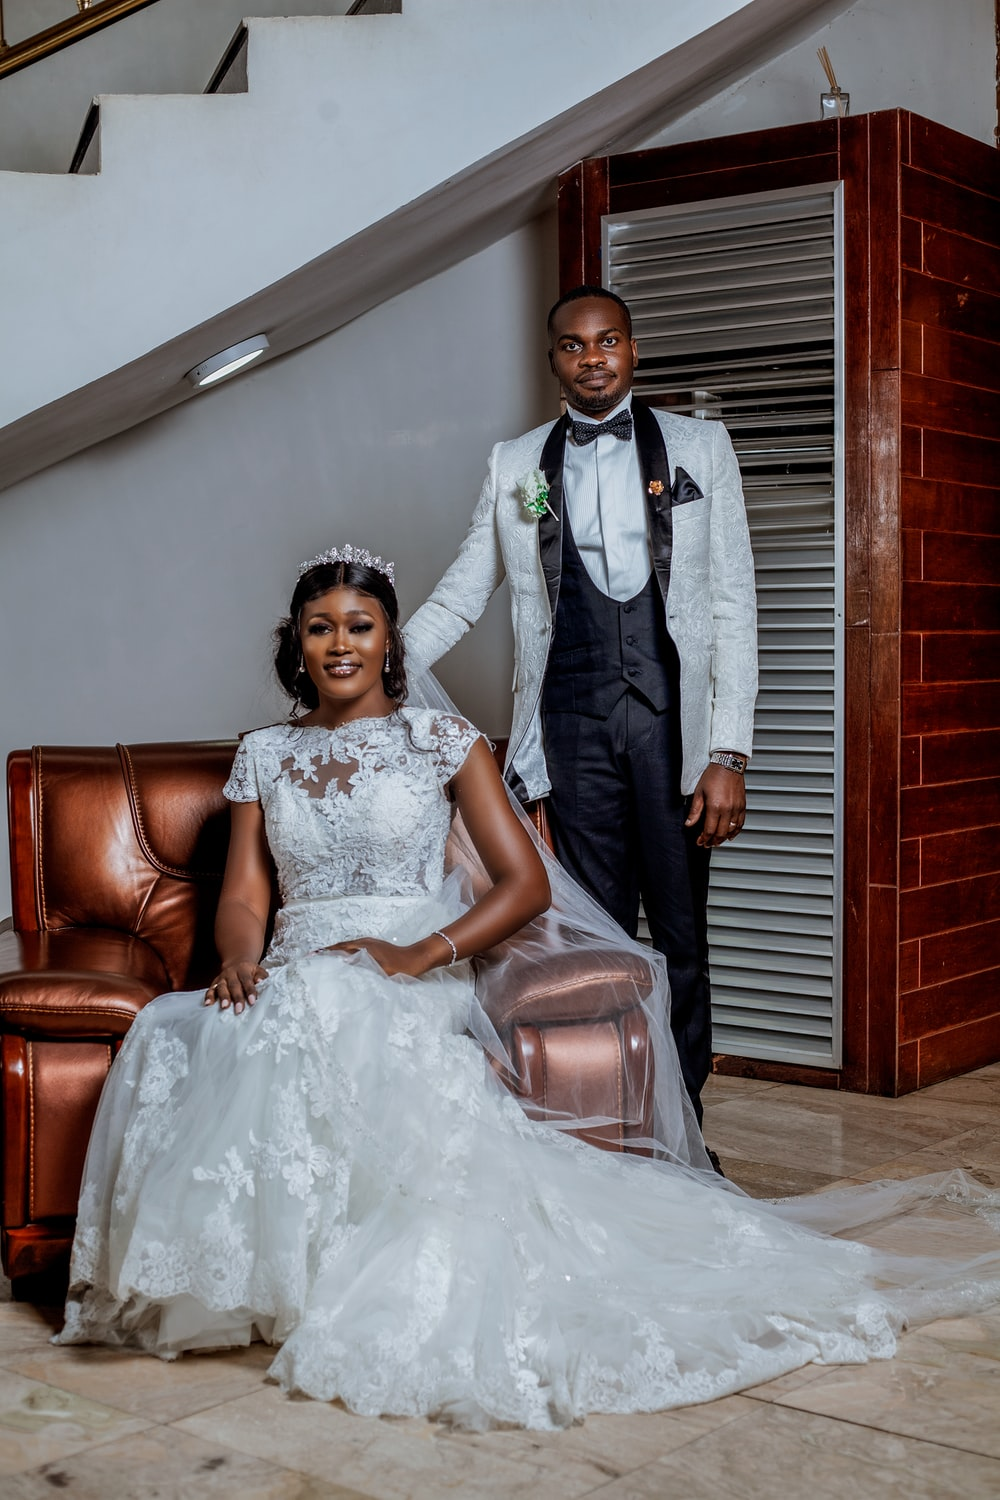 groom standing beside a bride sitting on a sofa chair